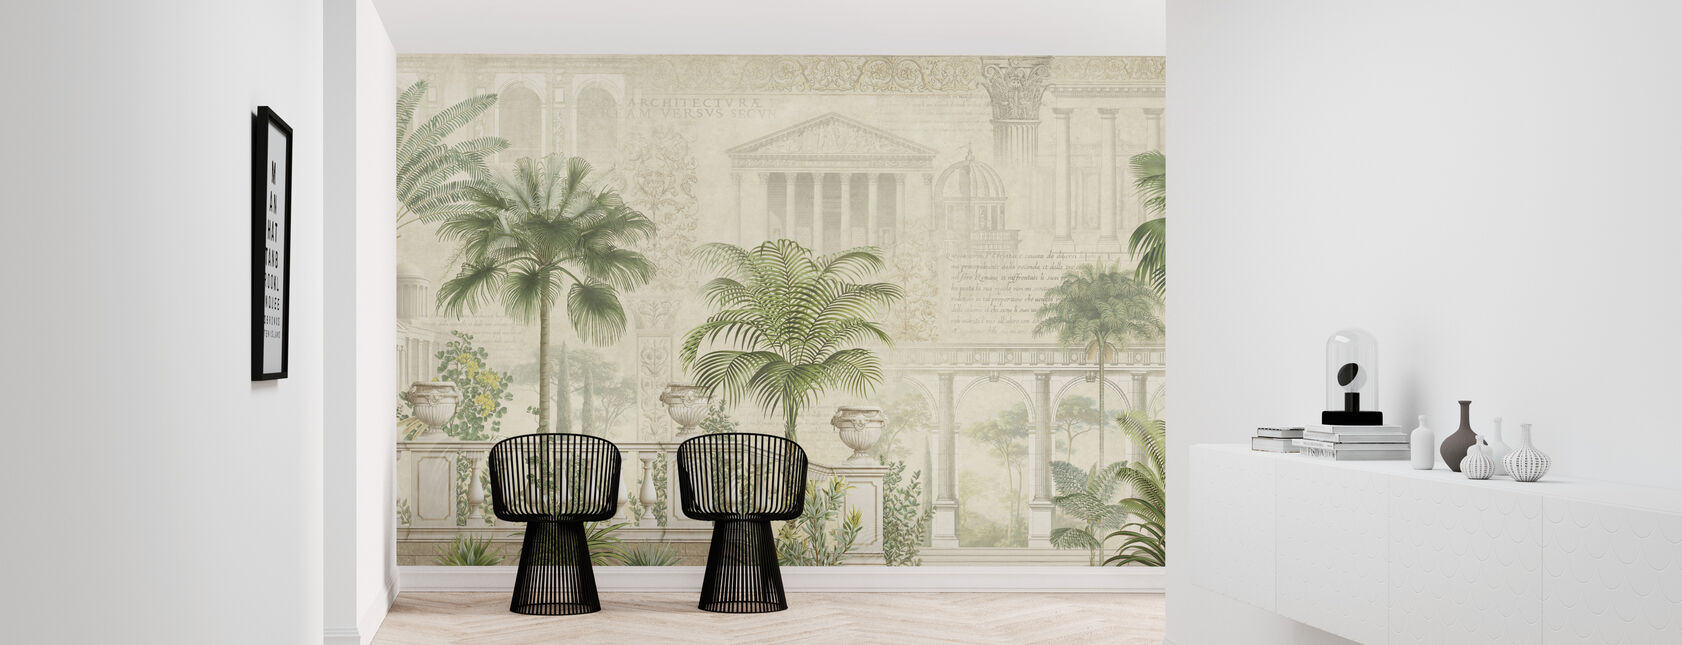 Tropical Residence - Wallpaper - Hallway